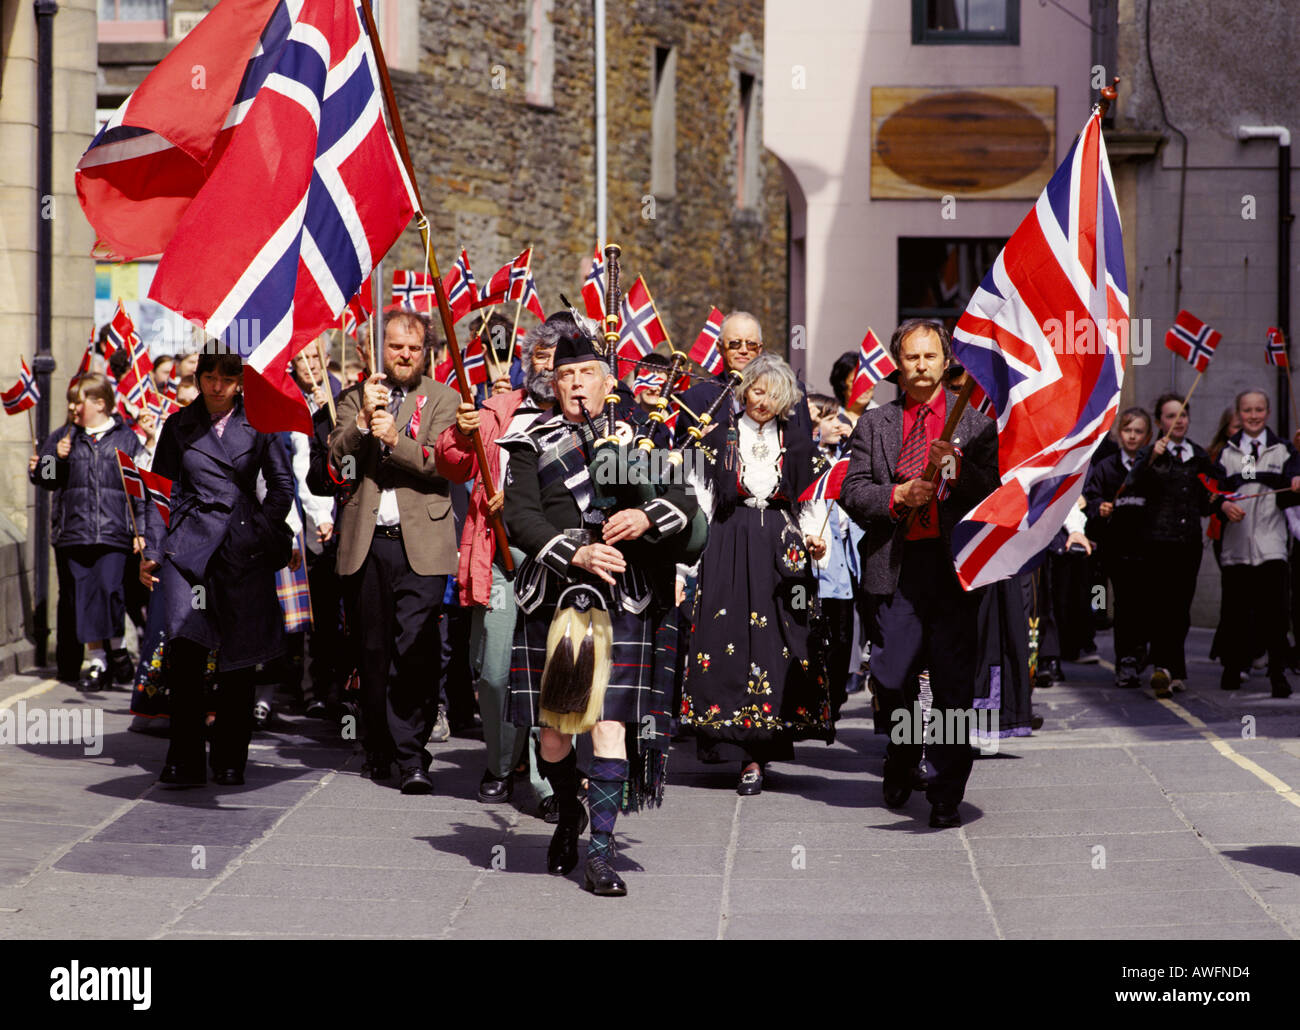 dh Norwegian Constitution Day KIRKWALL ORKNEY Bagpiper leading street parade Albert street Flags procession Stock Photo